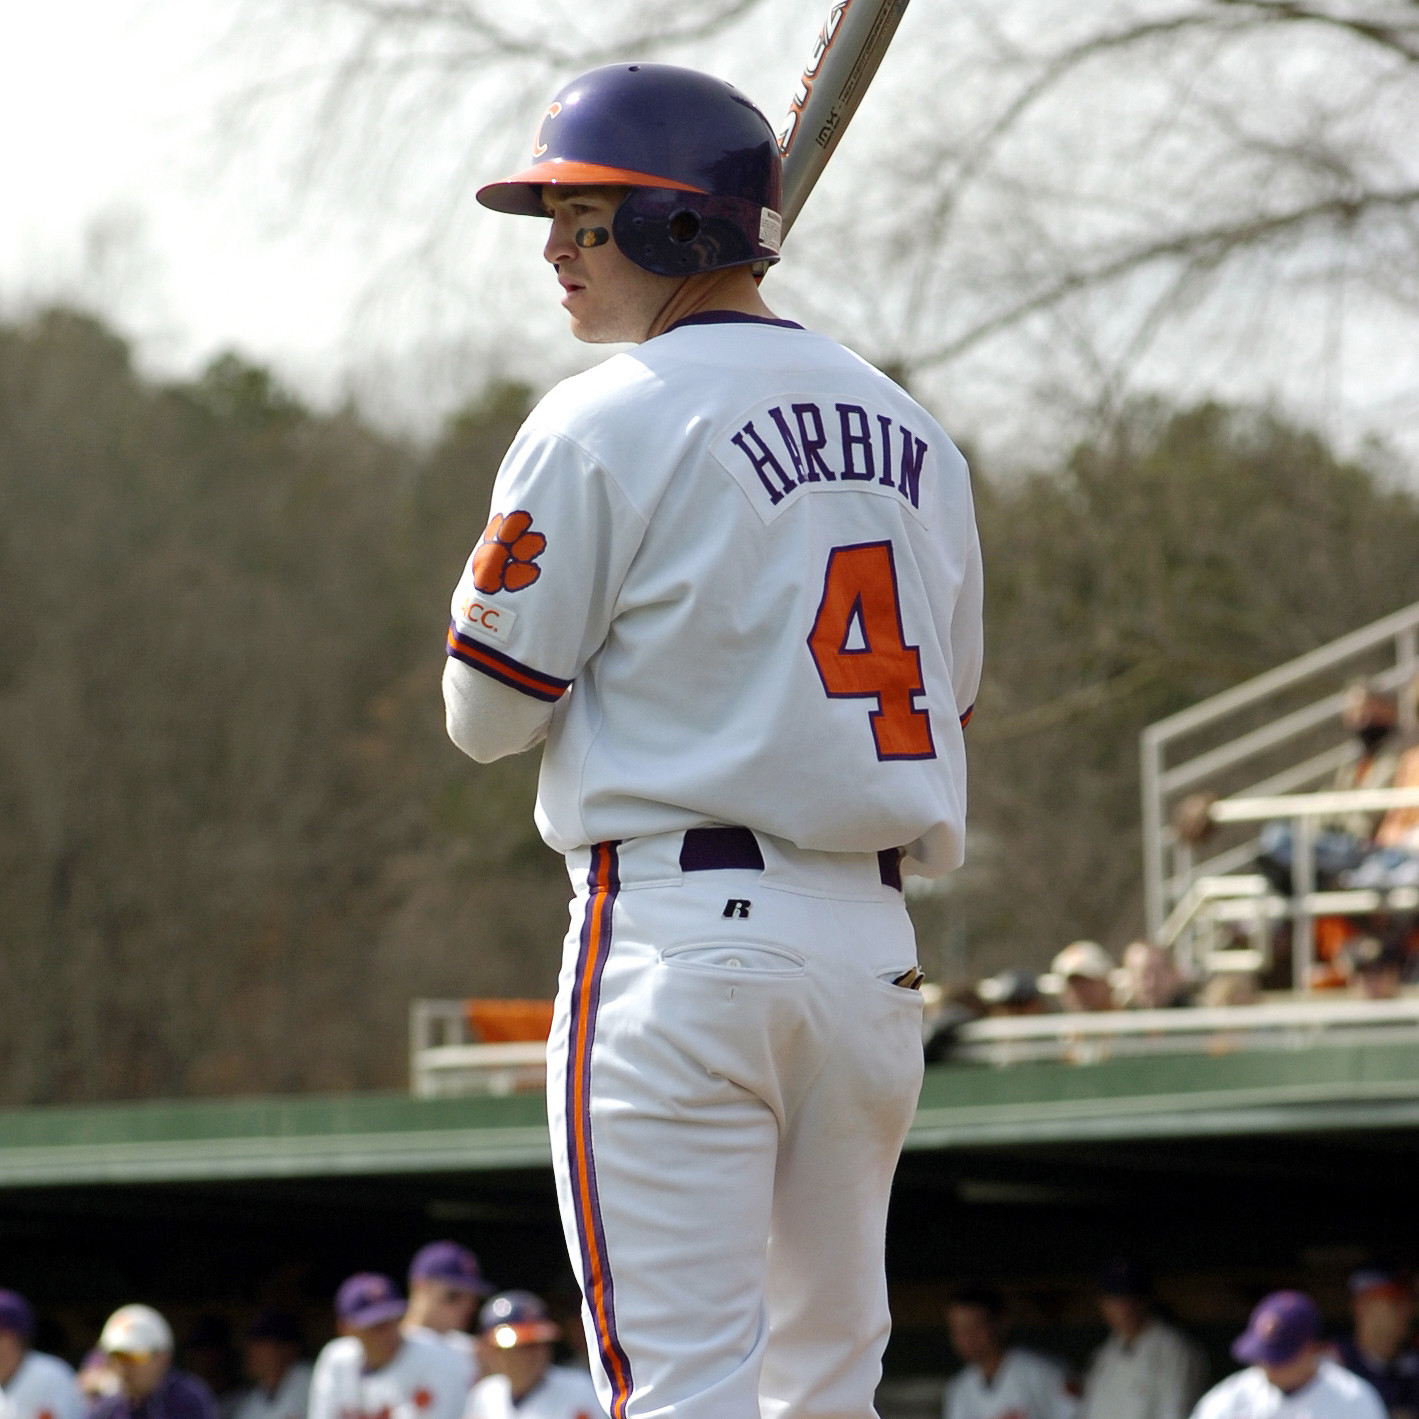 Harbin Returns to Clemson